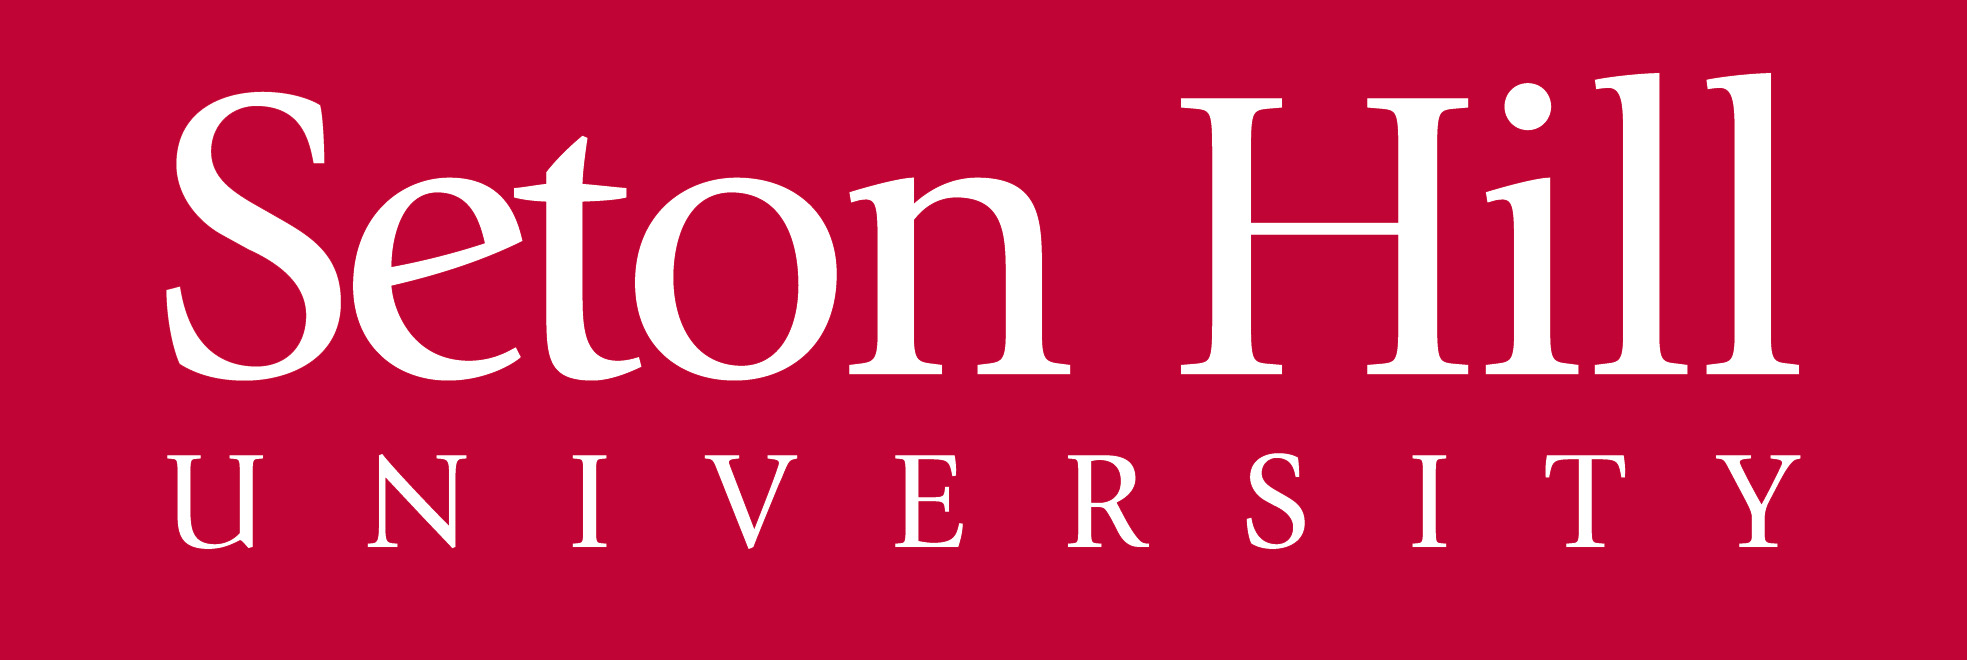 studio arts seton hill logo